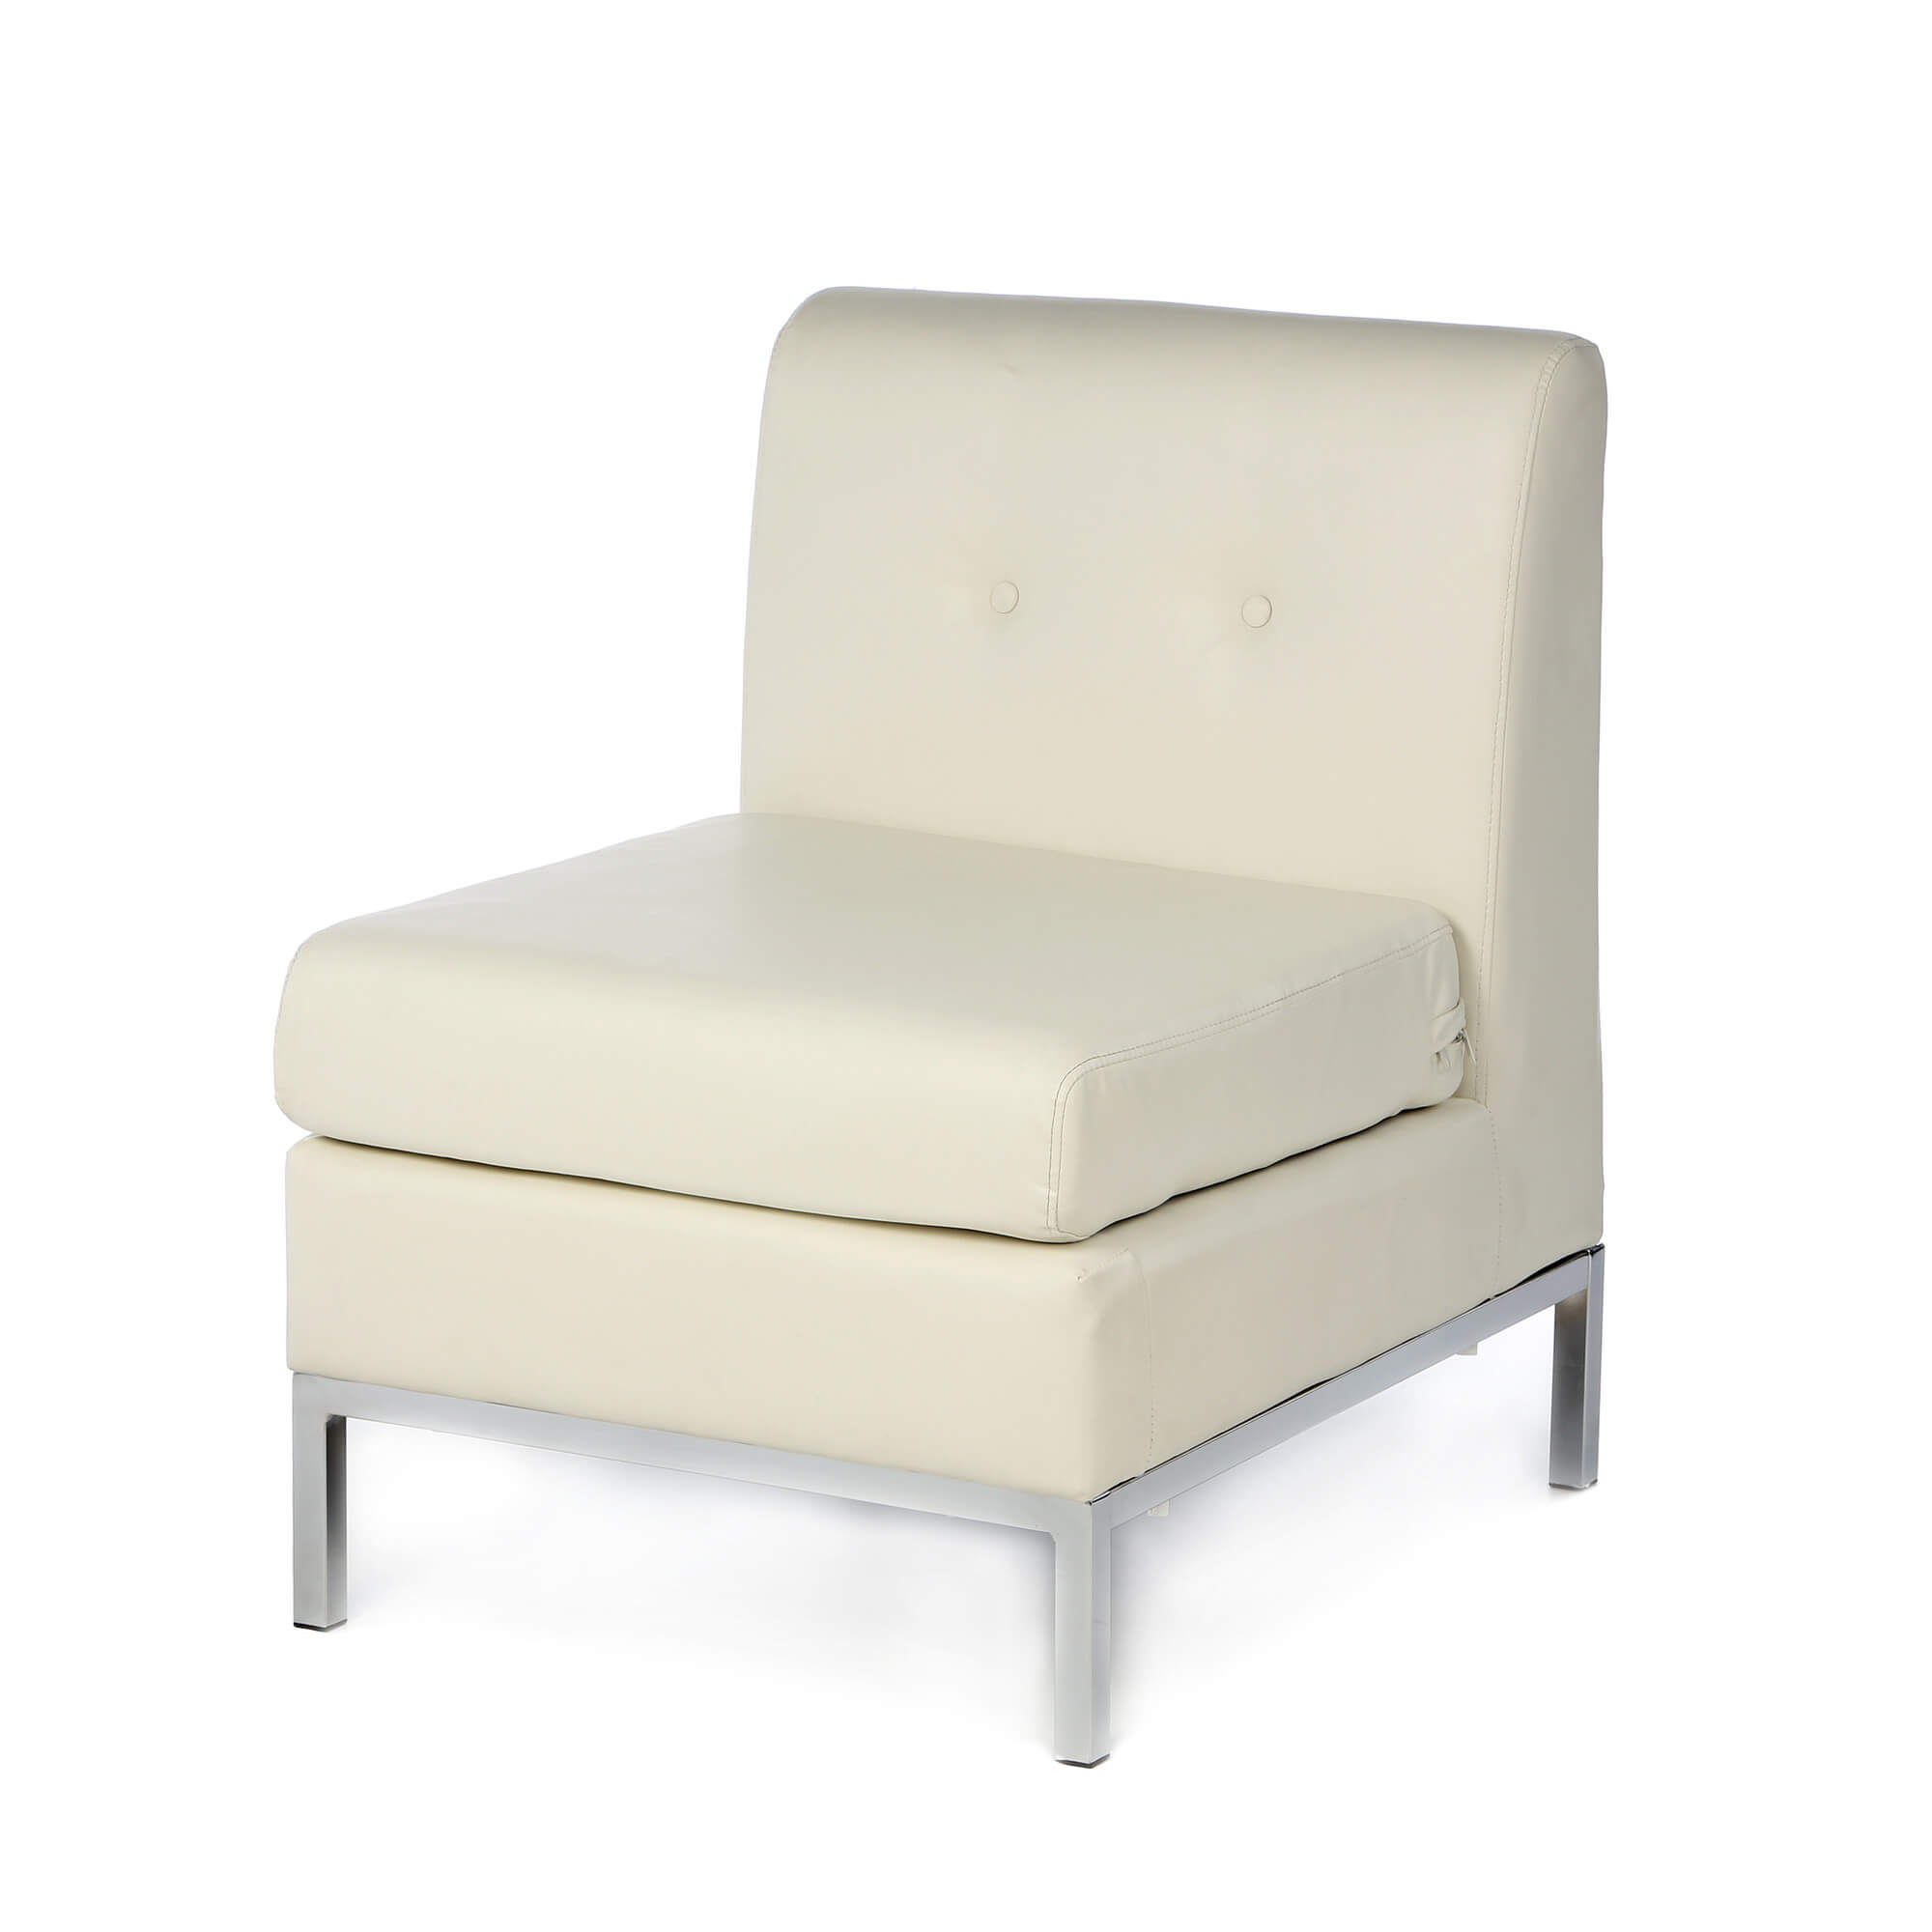 white leather slipper chair tall patio chairs hold 350 lbs 37 modern accent for the living room